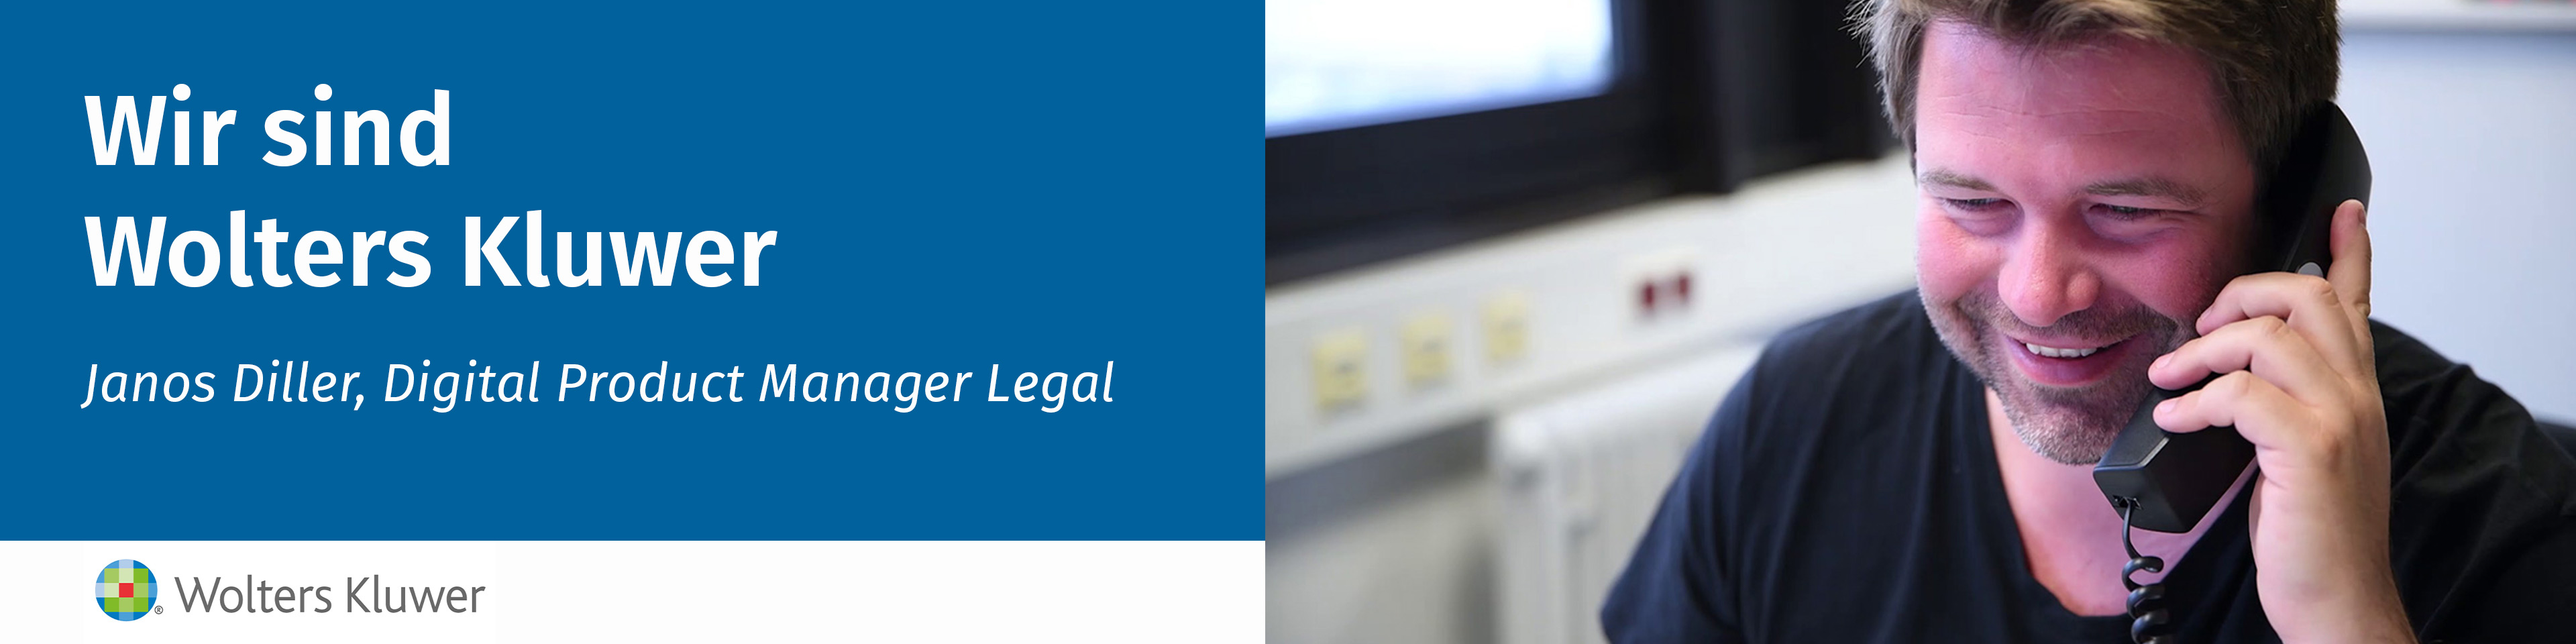 Wir sind Wolters Kluwer: Janos Diller, Digital Product Manager Legal